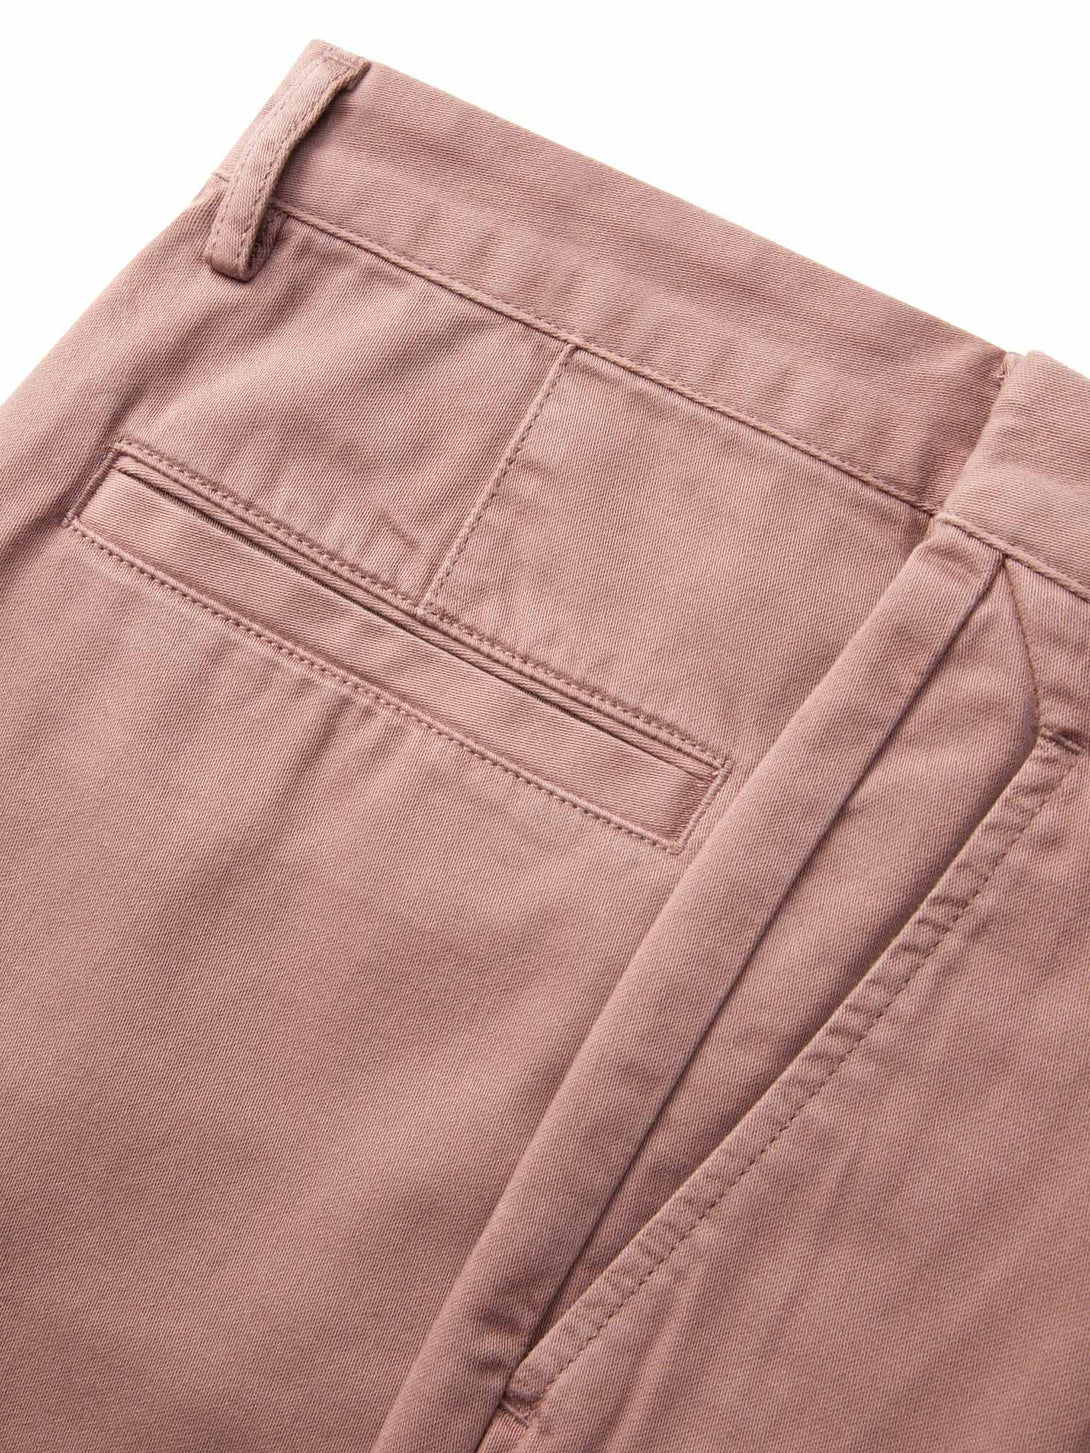 ons garage men's shorts MAUVE